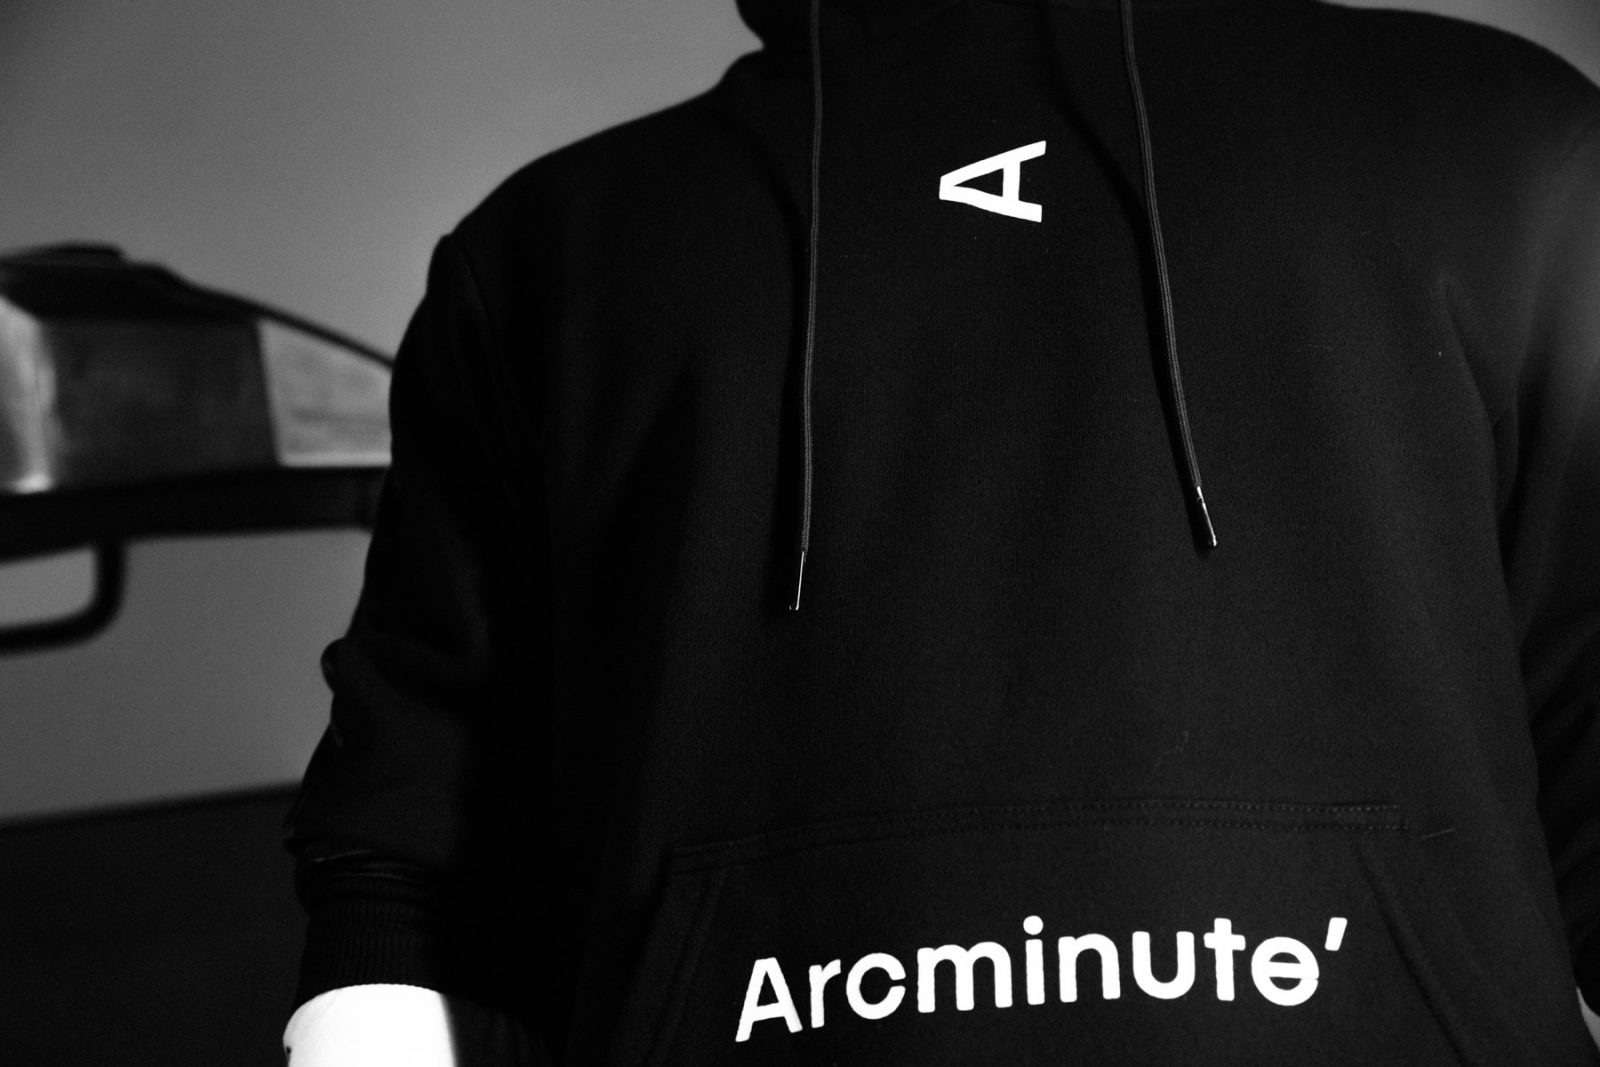 Arcminute' launch Drop 2